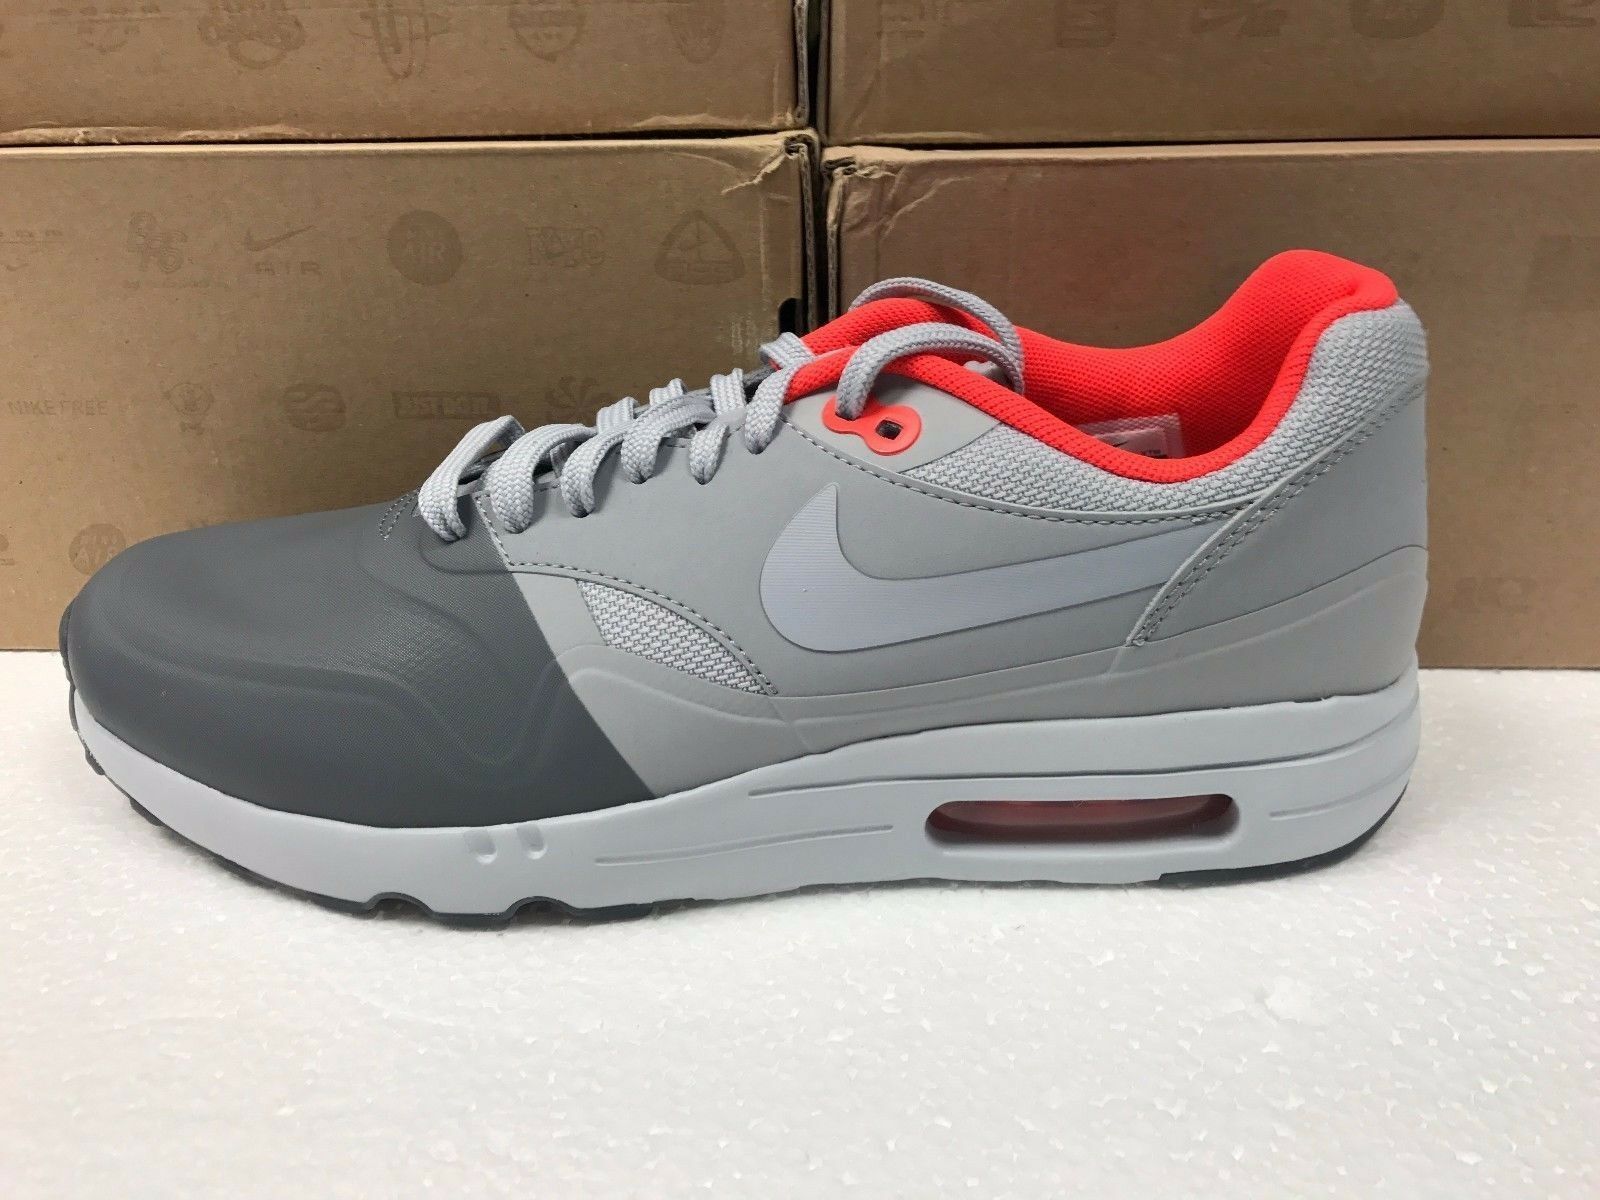 new product fb9c9 8a4ed ... NEW MENS NIKE AIR MAX 1 ULTRA 2.0 2.0 2.0 SE SNEAKERS 875845 003-SIZE  ...